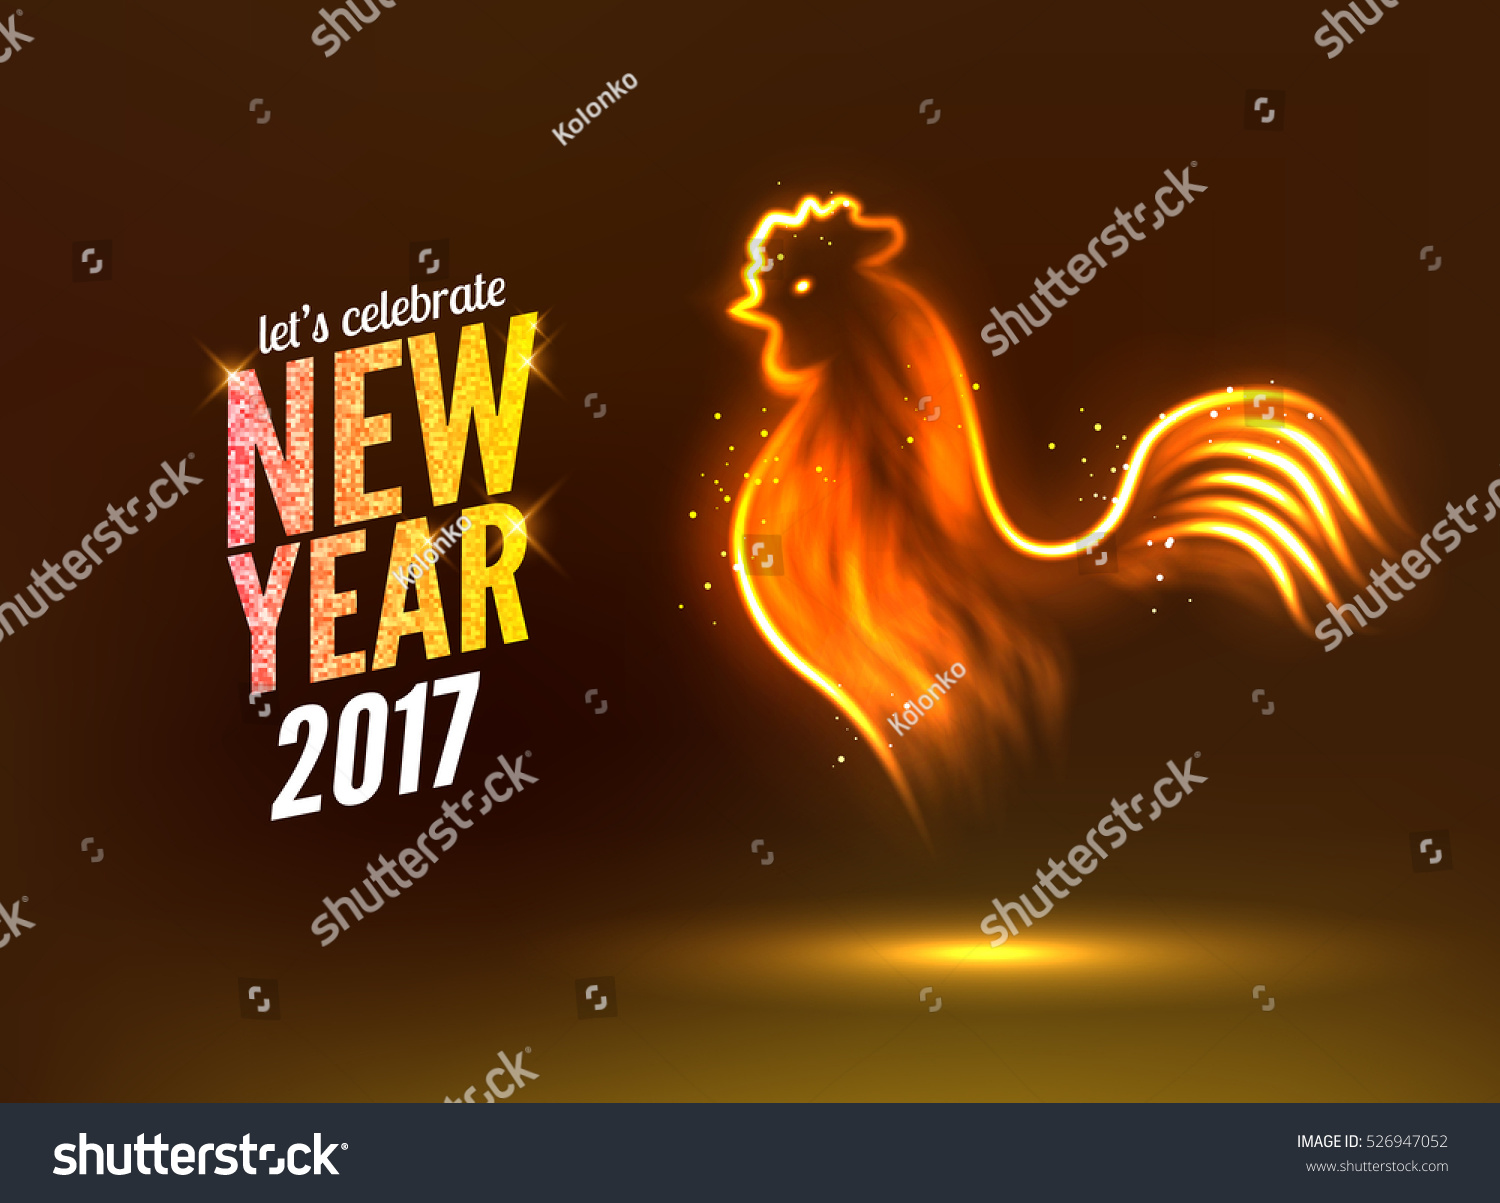 Rooster New Year Greeting Card Design Stock Illustration 526947052